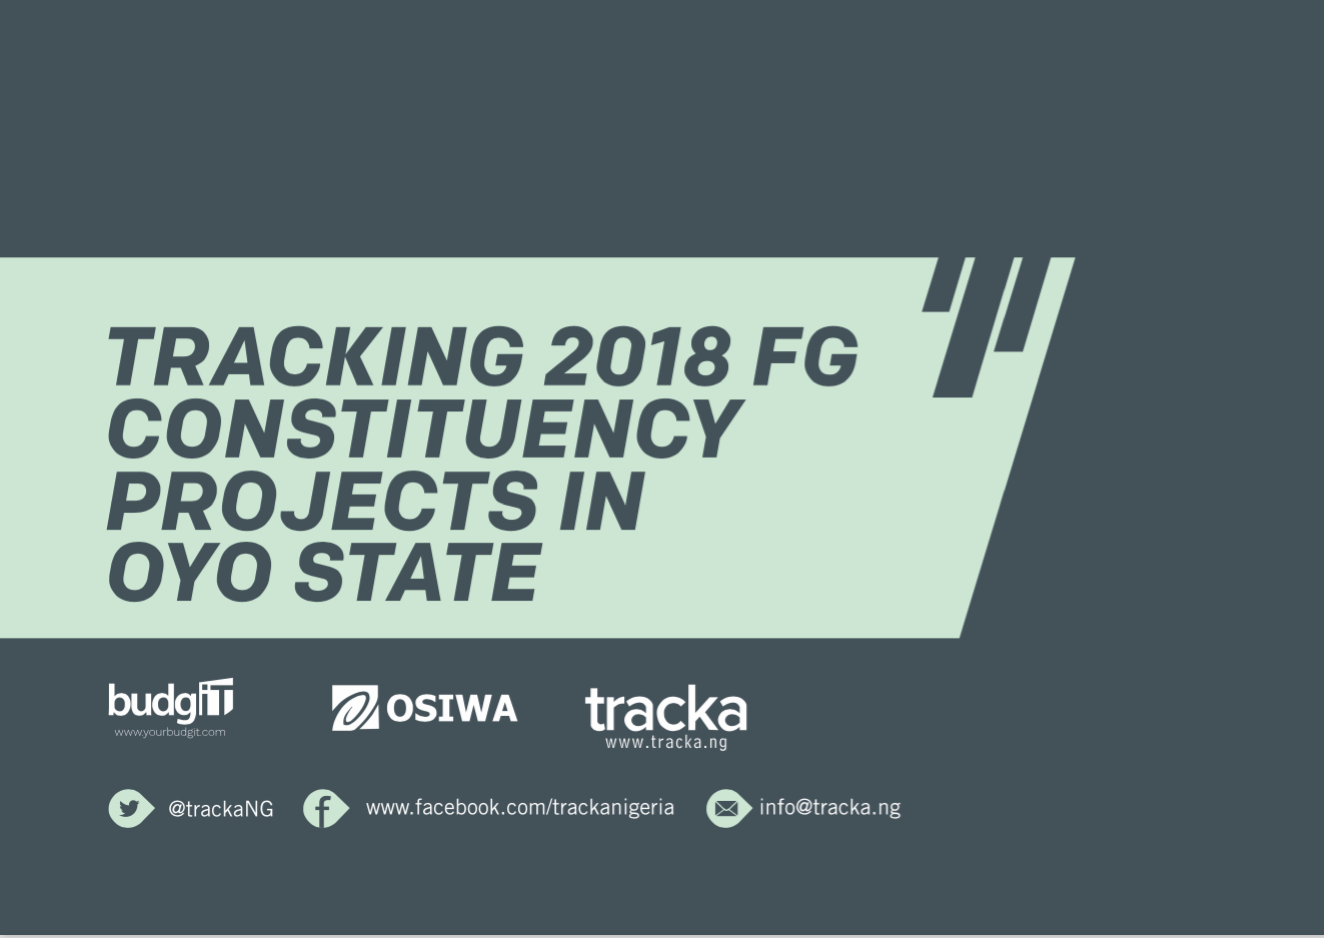 2018 FG Constituency Projects in Oyo State